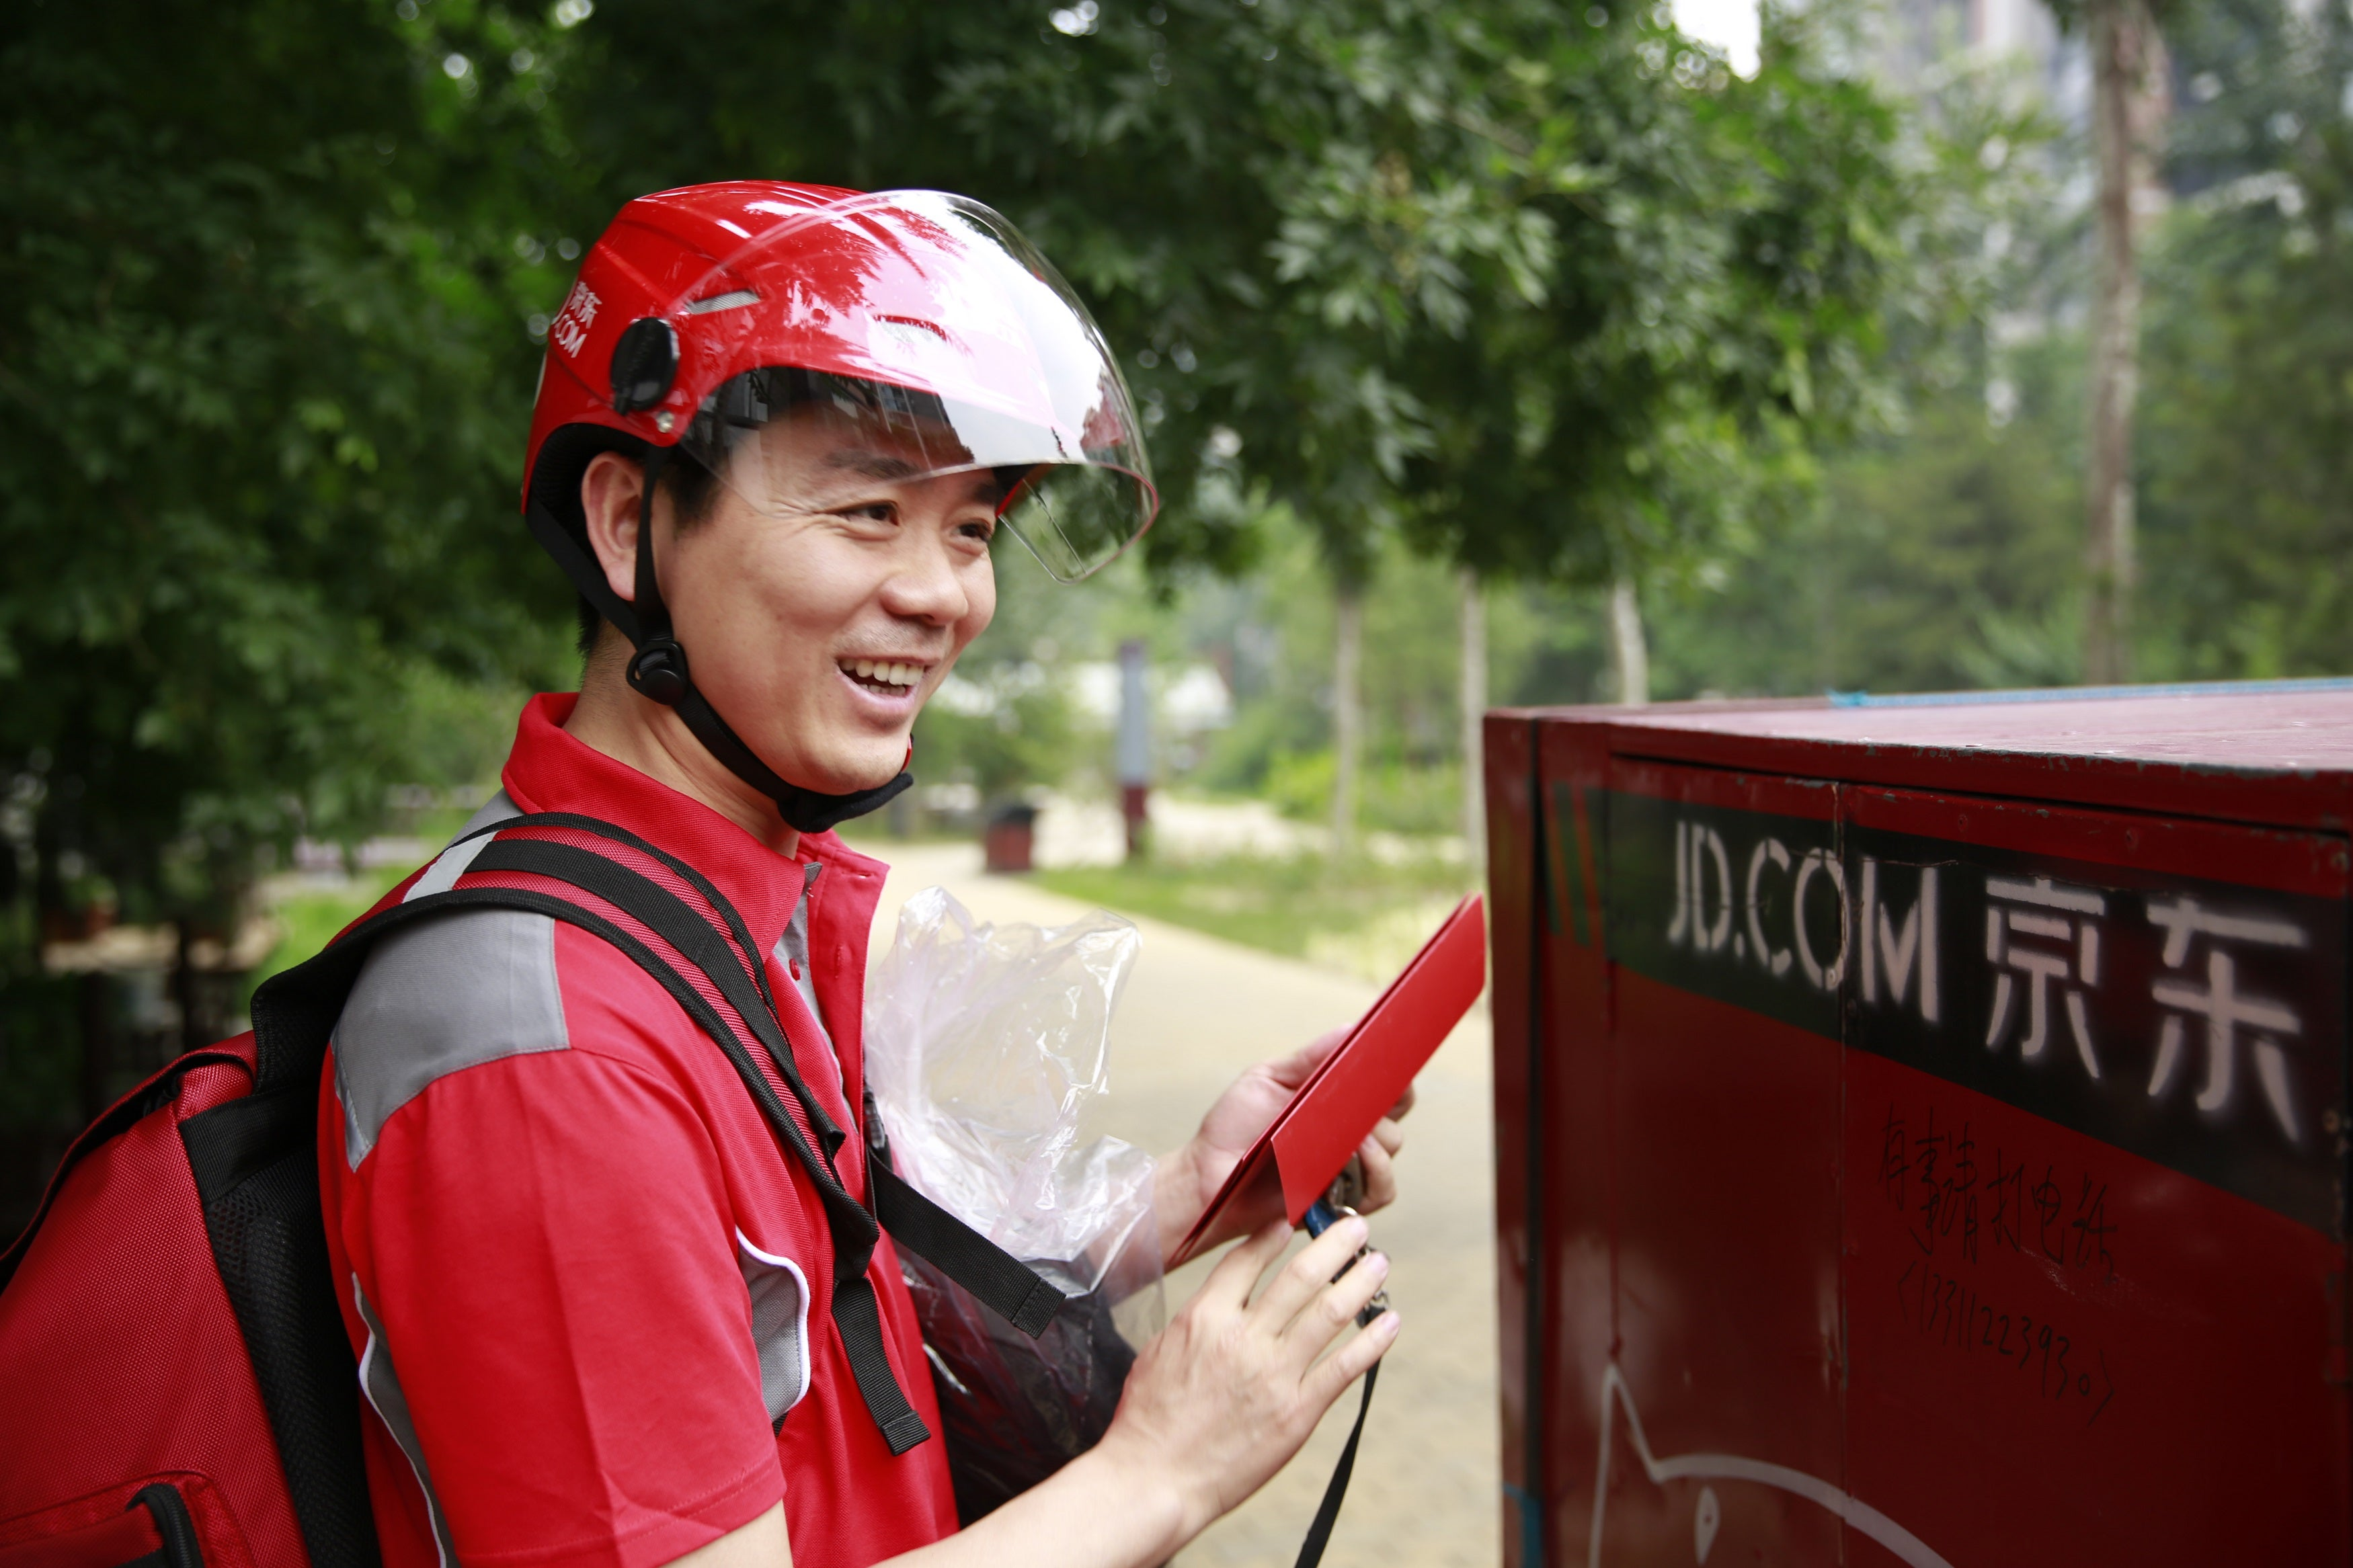 3 Ways JD.com Is Beating Amazon | The Motley Fool